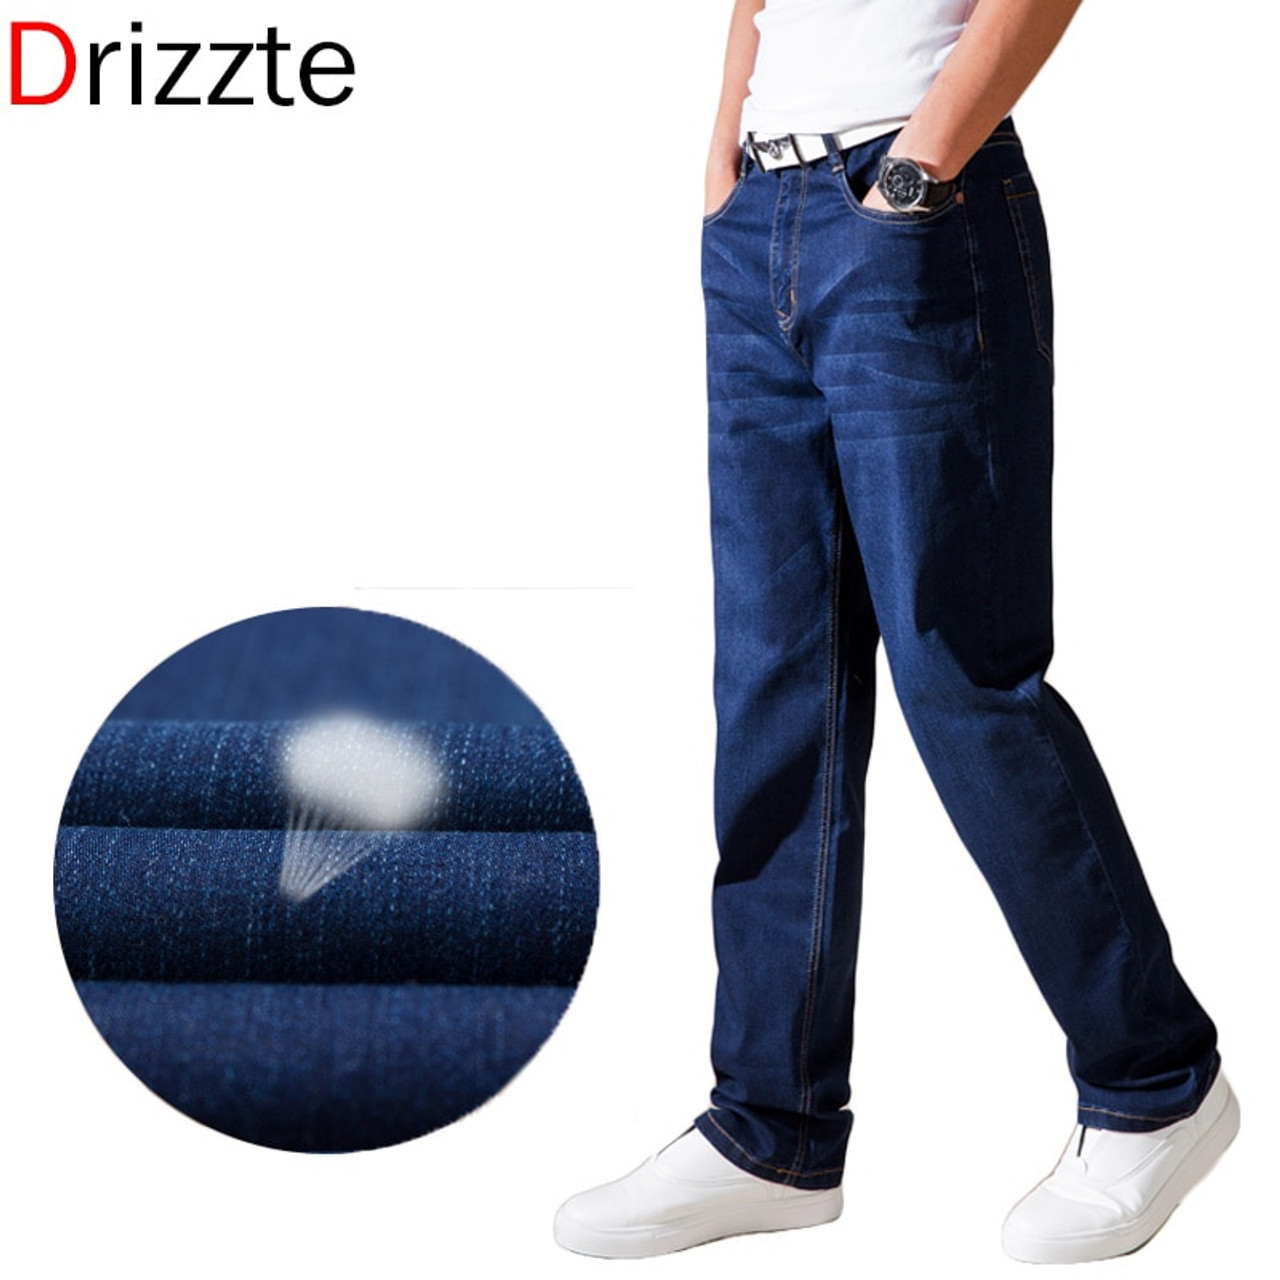 896f172b5e6 ... Drizzte Summer Thin Jeans Fashion Mens Stretch Denim Jean Loose Fit  Relax Denim Trousers Pants Jean ...